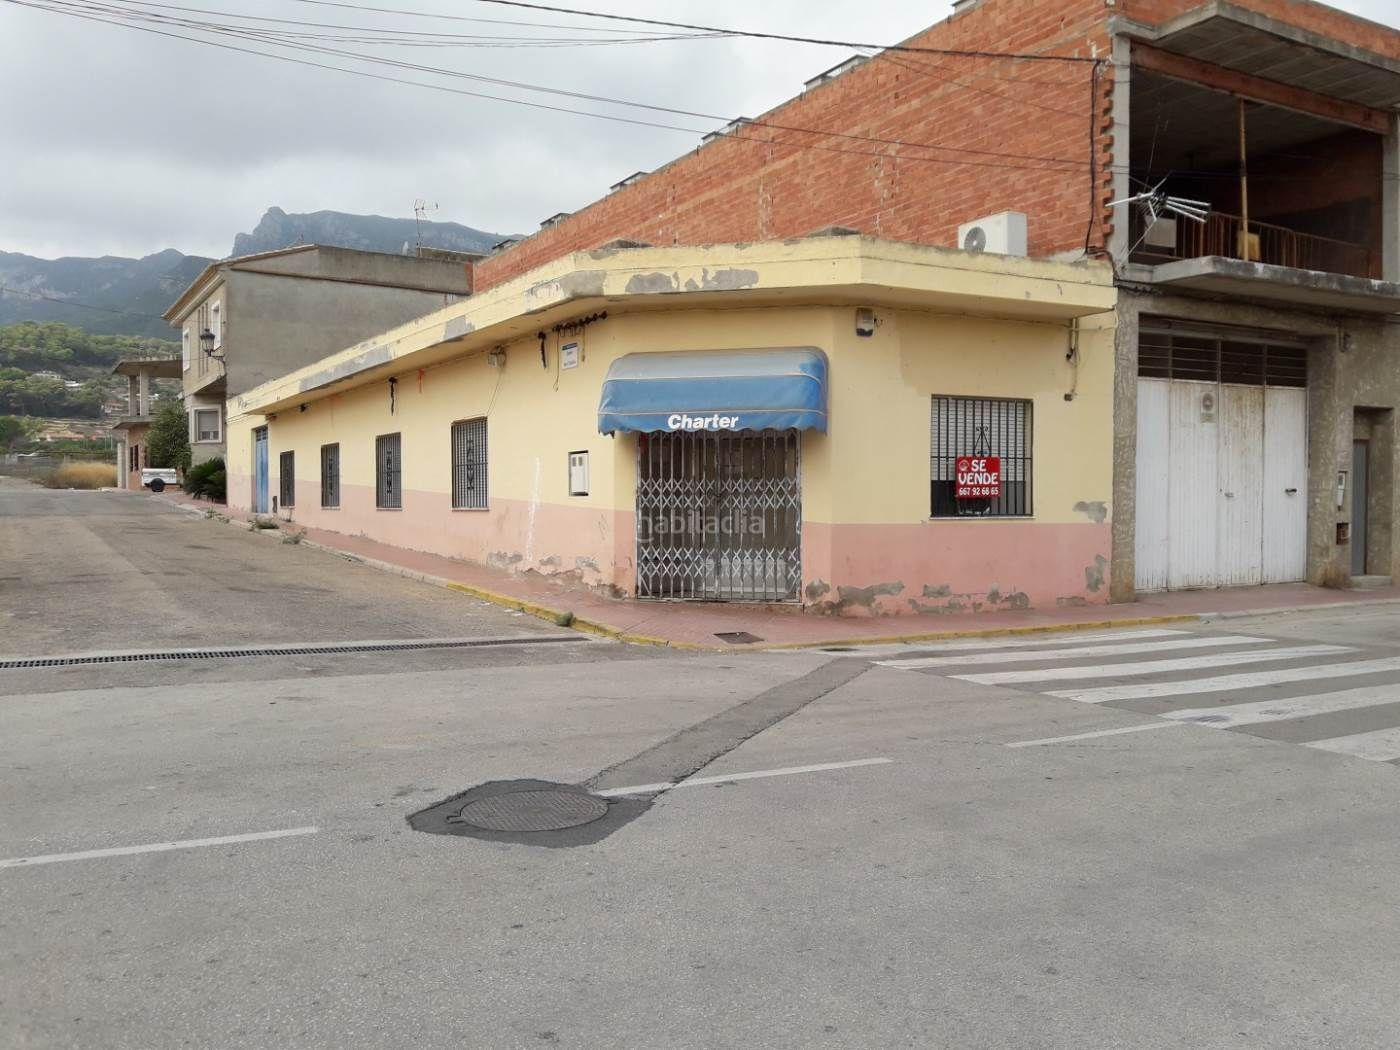 Local Comercial  Calle san vicente. Oportunidad